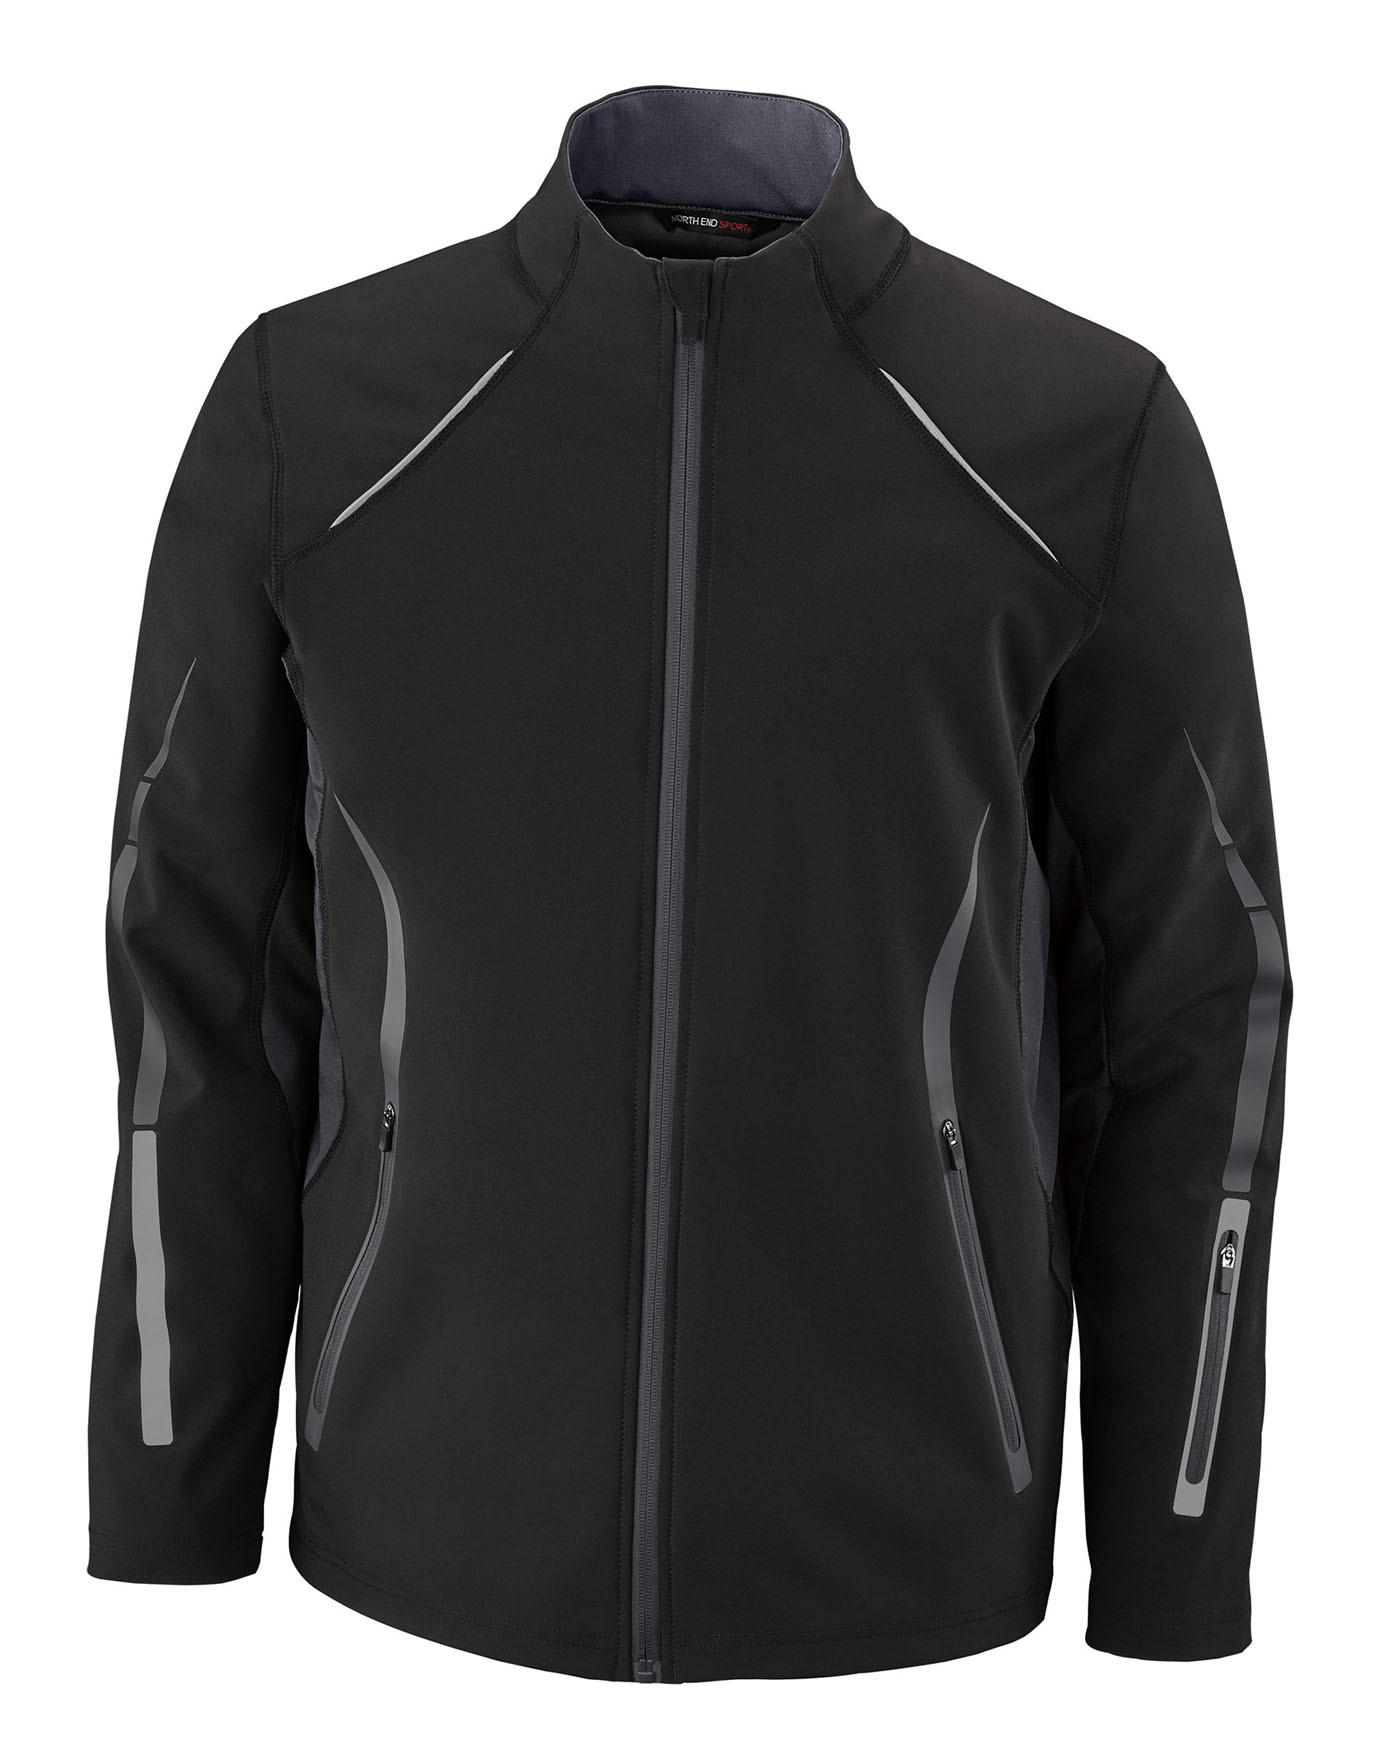 Ash City Light Bonded Jackets 88678 - Pursuit Men's ...